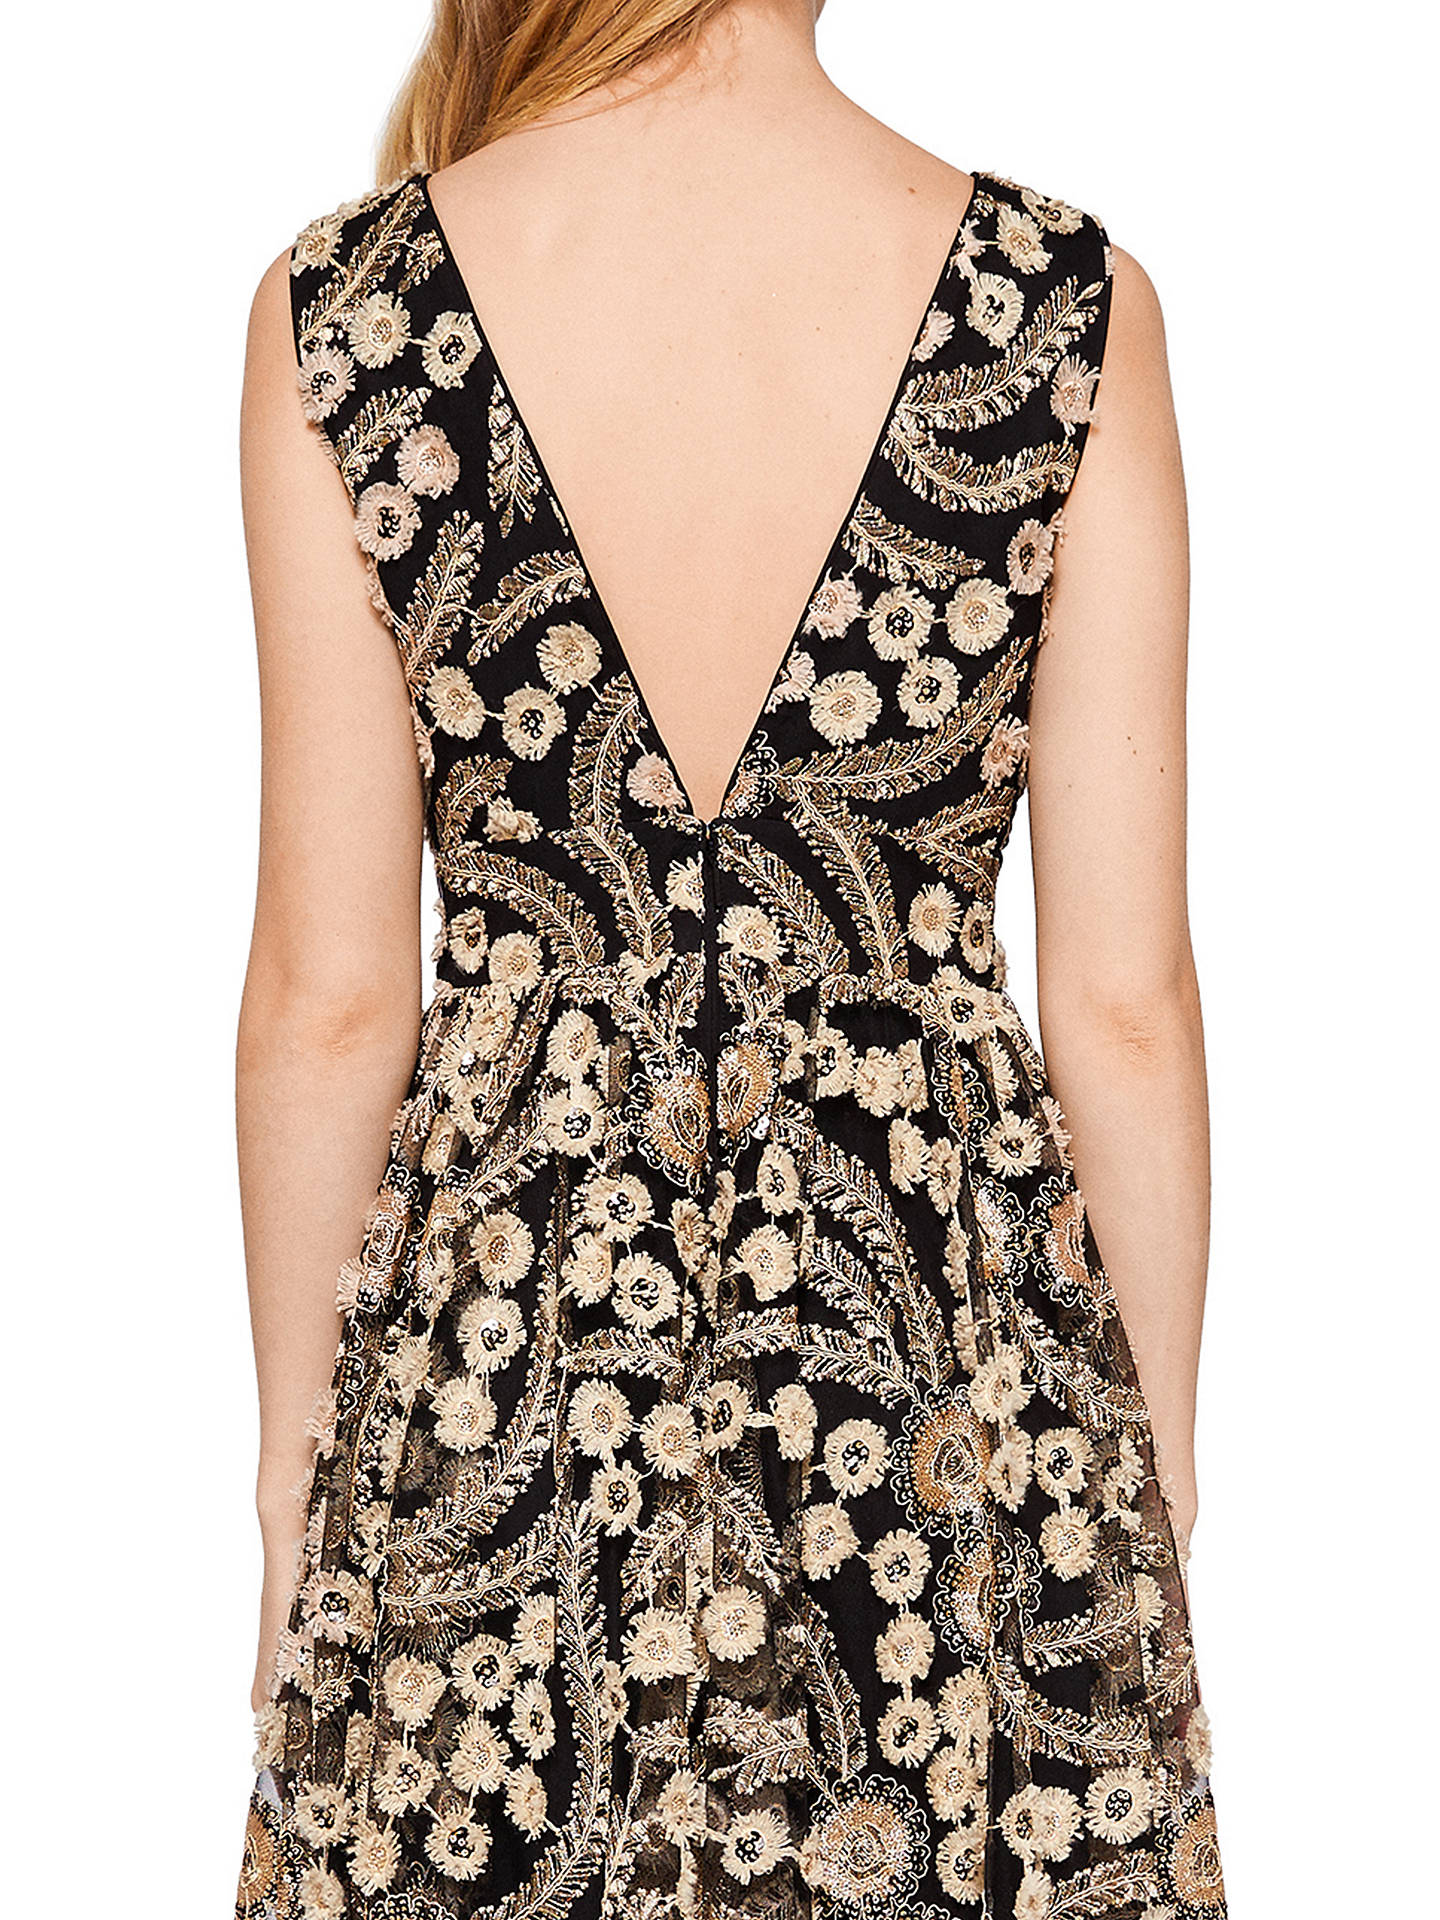 BuyTed Baker Reeda Double Layer Low V Back Dress, Black, 0 Online at johnlewis.com